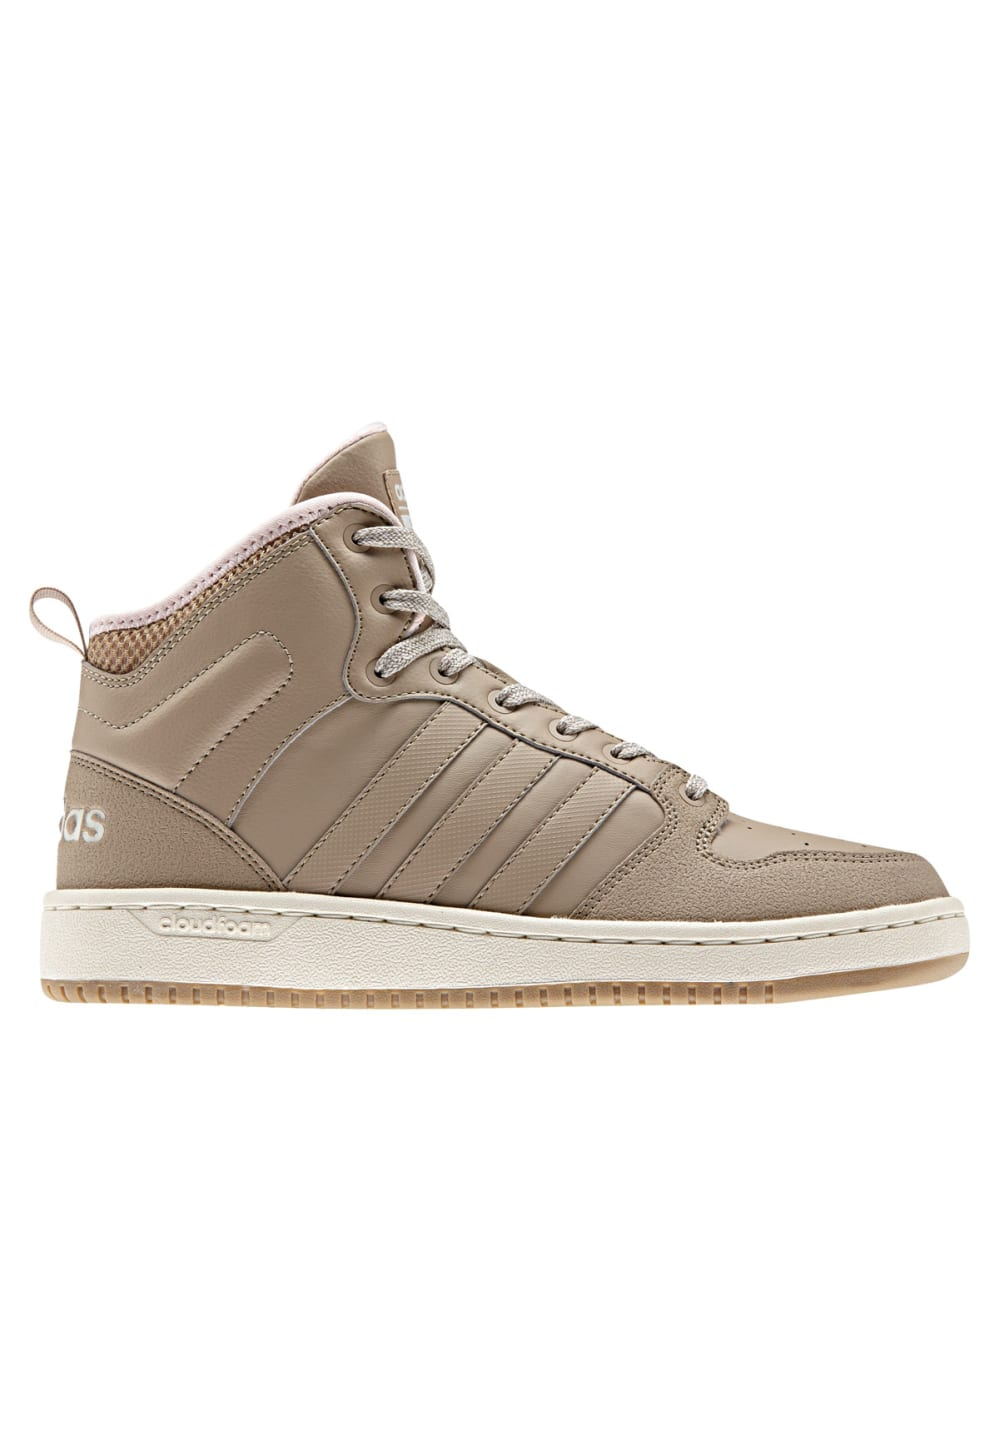 85db78ed65 ... Cloudfoam Hoops Winter Mid - Sneaker for Women - Brown. Back to  Overview. 1  2  3  4. Previous. Next